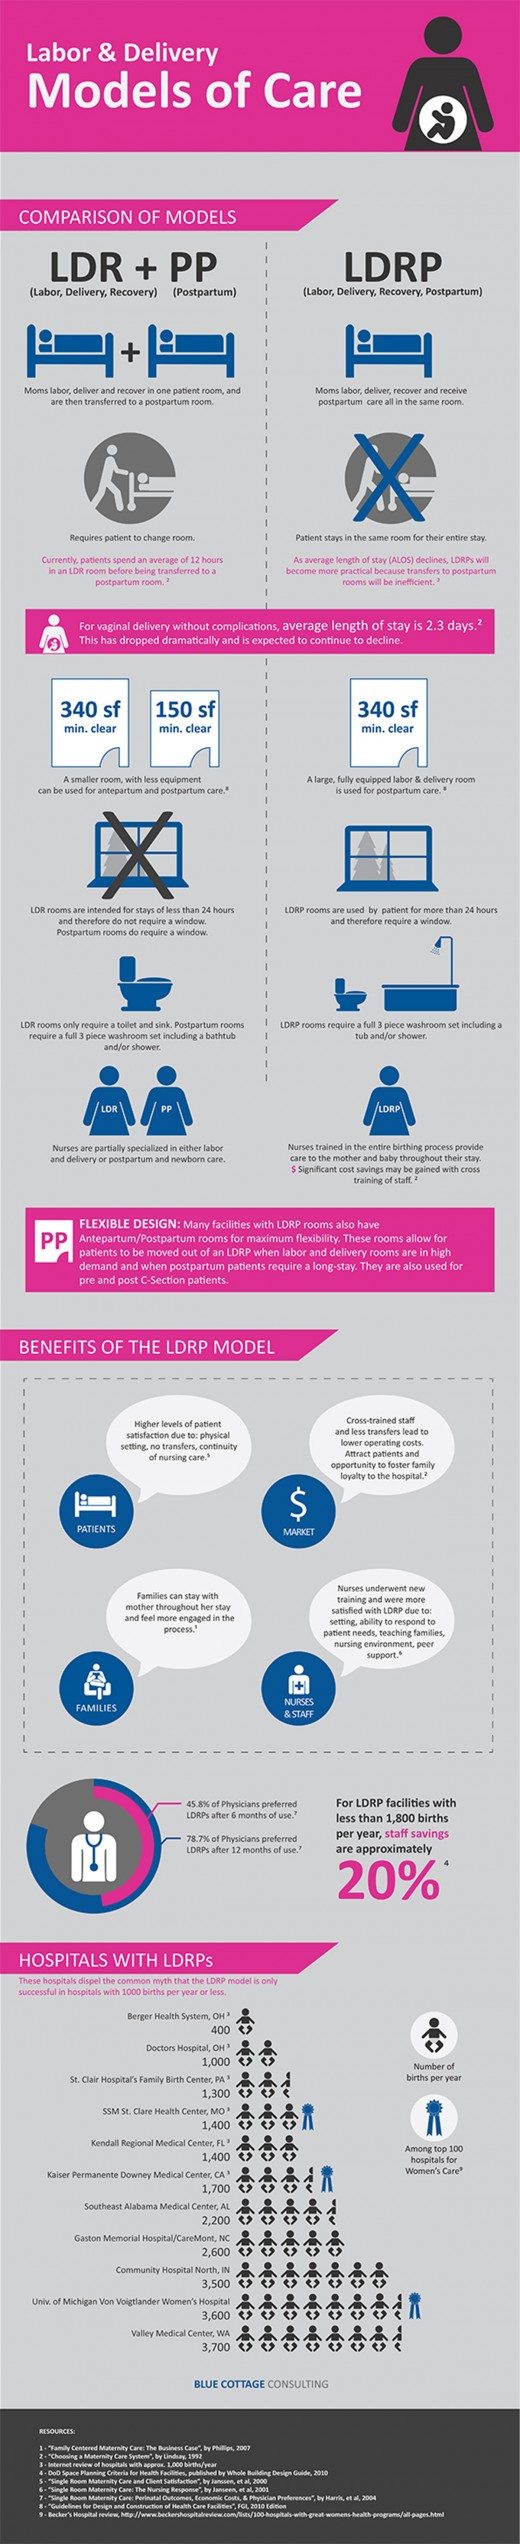 Models of Care: Labor and Delivery